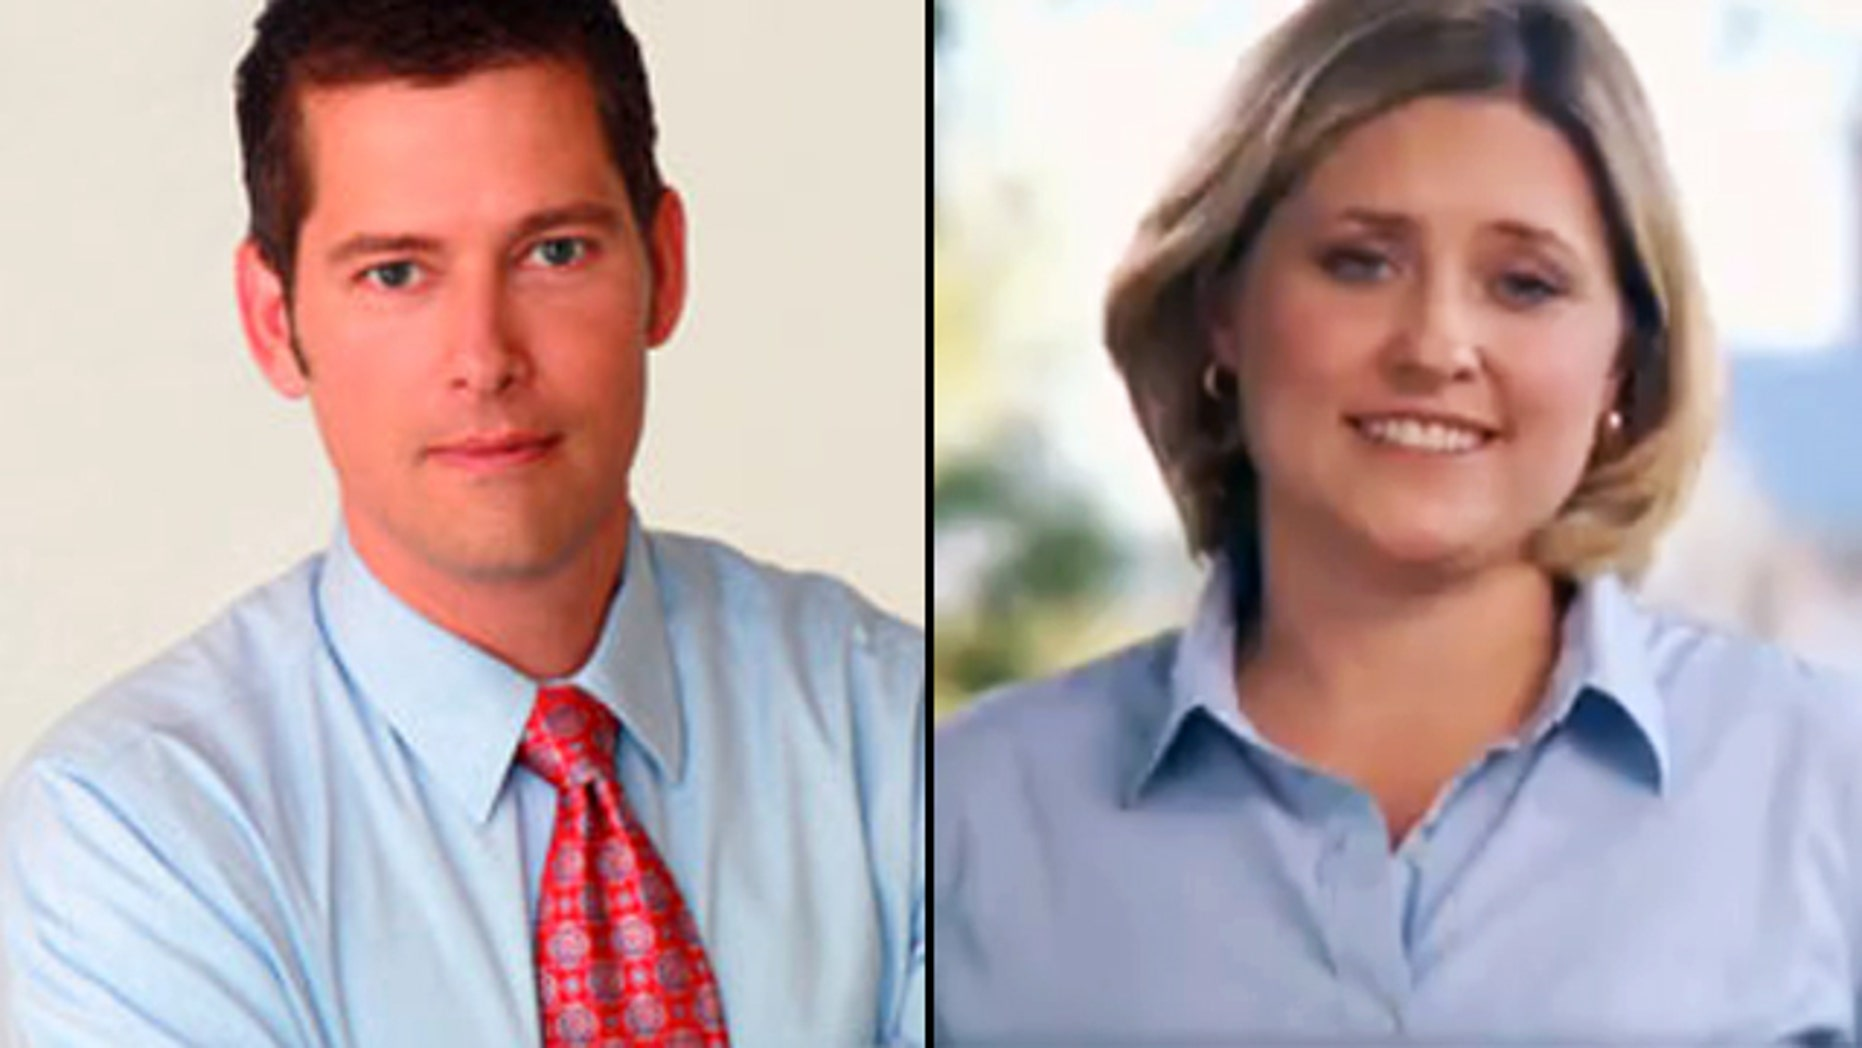 District Attorney Sean Duffy could face Wisconsin state Sen. Julie Lassa in a race to succeed retiring U.S. Rep. David Obey.